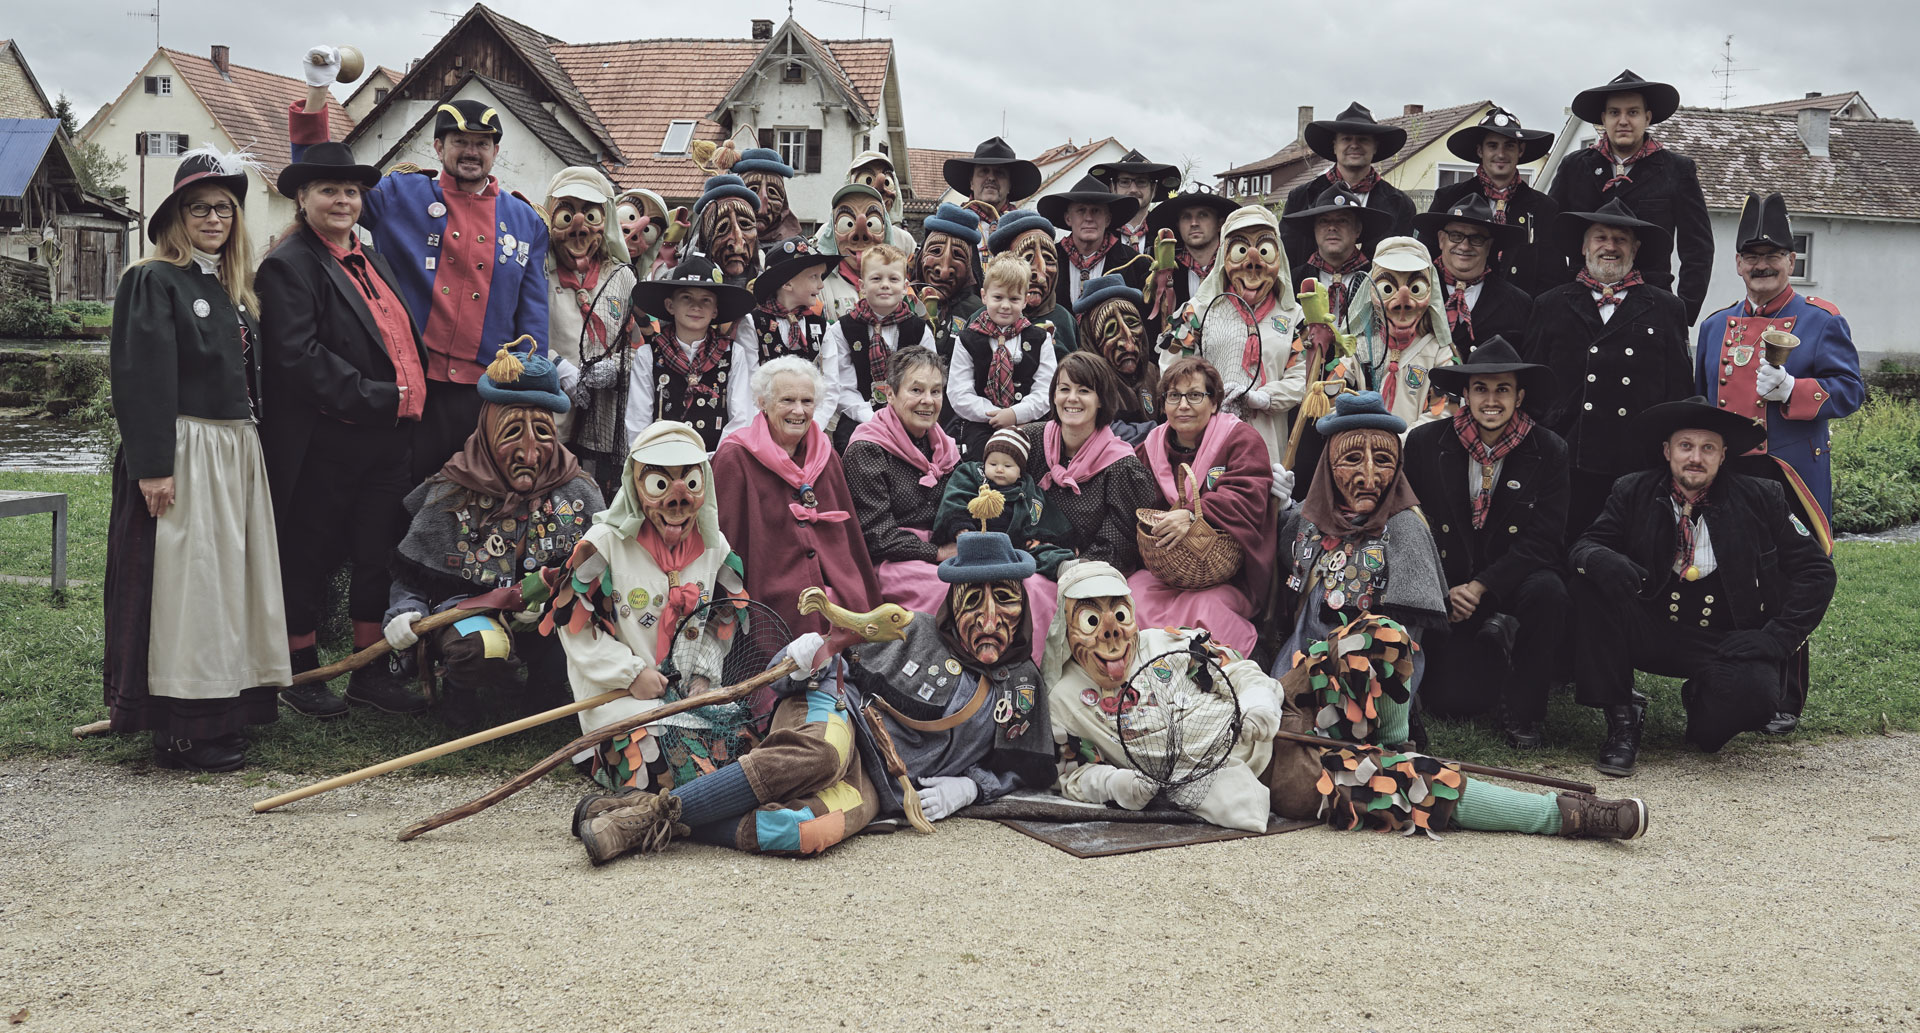 narrenzunft-buronia-gruppenbild-2